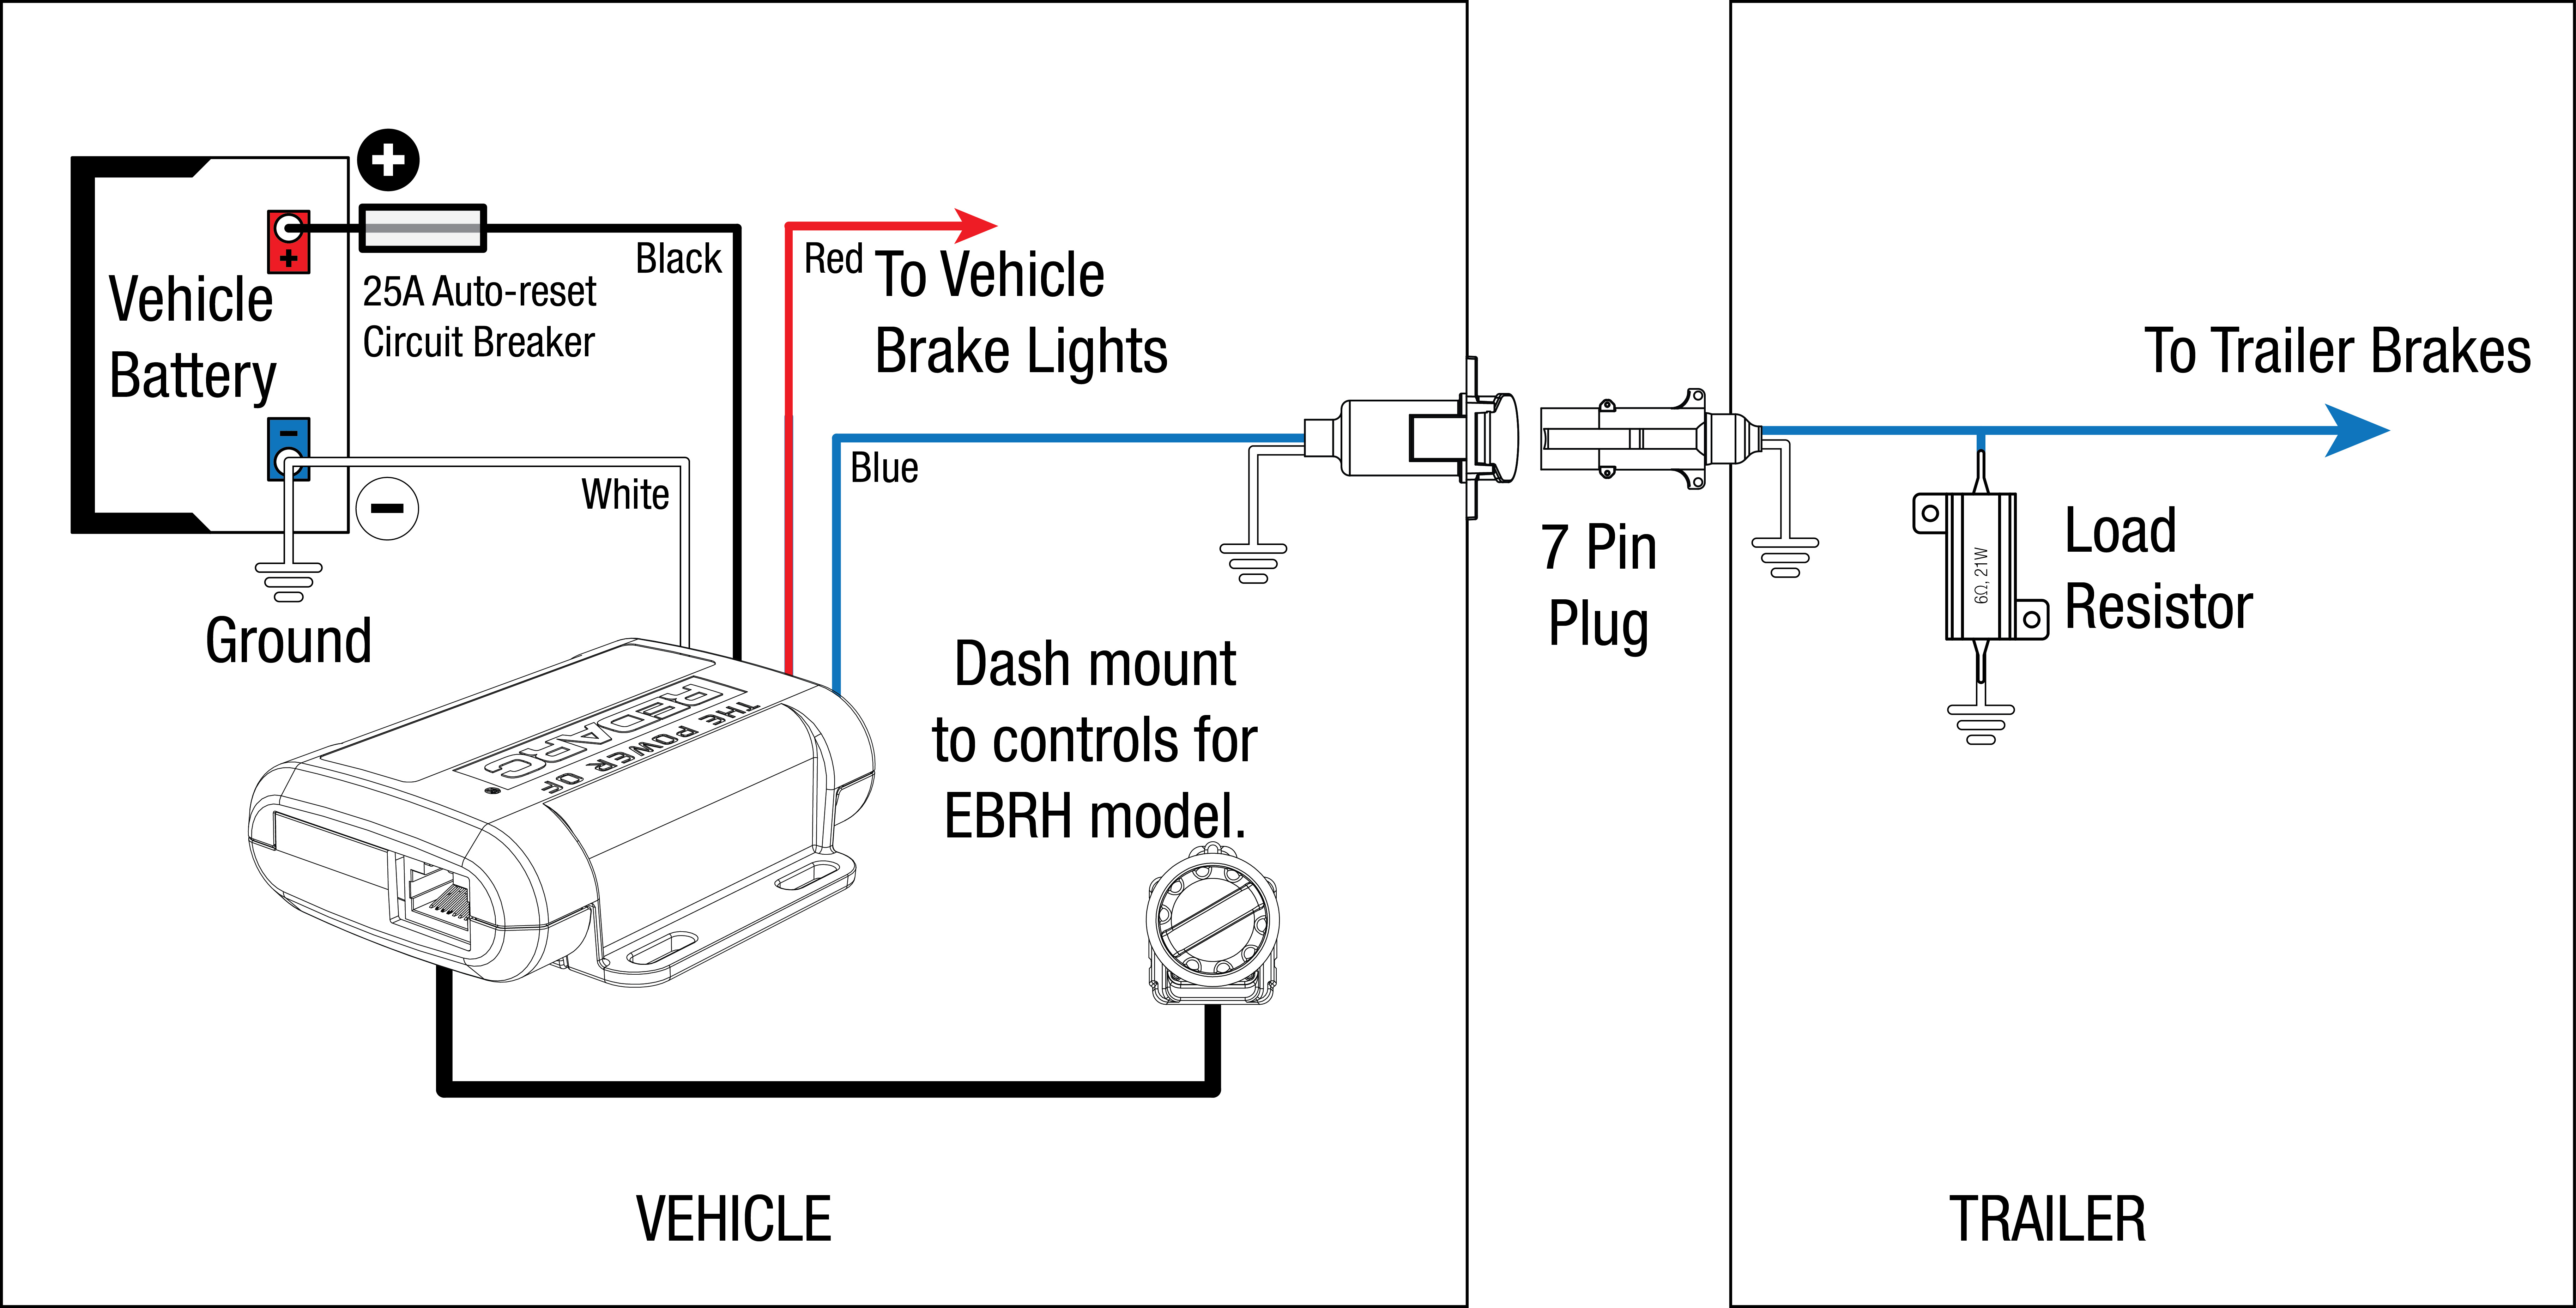 Tow-Pro Electric/hydraulic Braking Systems | Redarc Electronics - Trailer Wiring Diagram For Electric Brakes